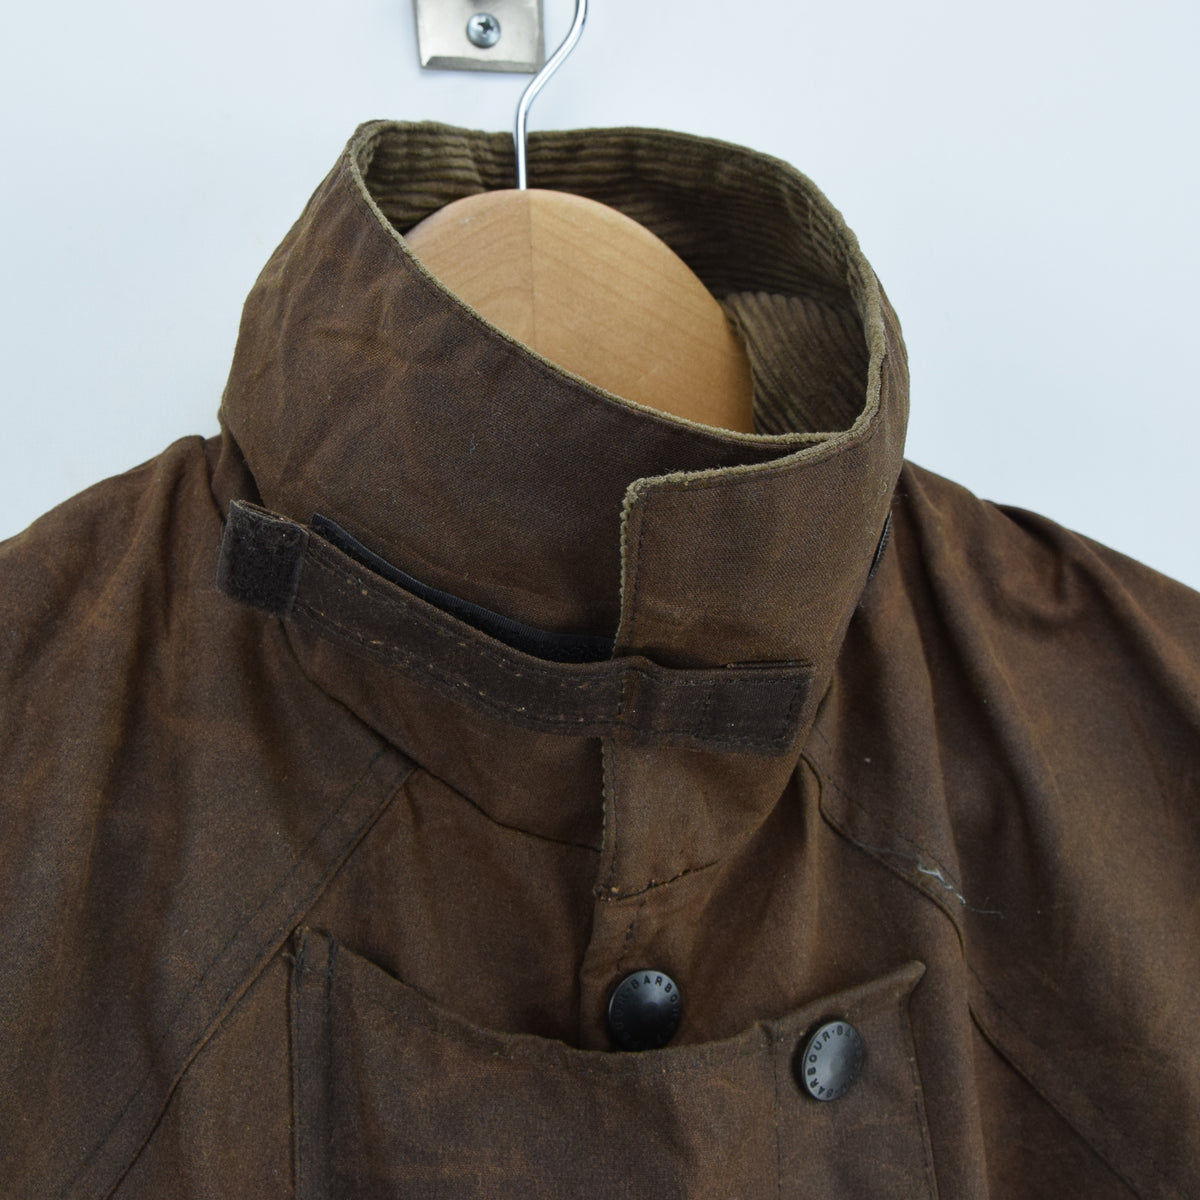 Vintage Backhouse Brown A1250 Stockman's Coat Wax Cotton Riding Jacket S collar